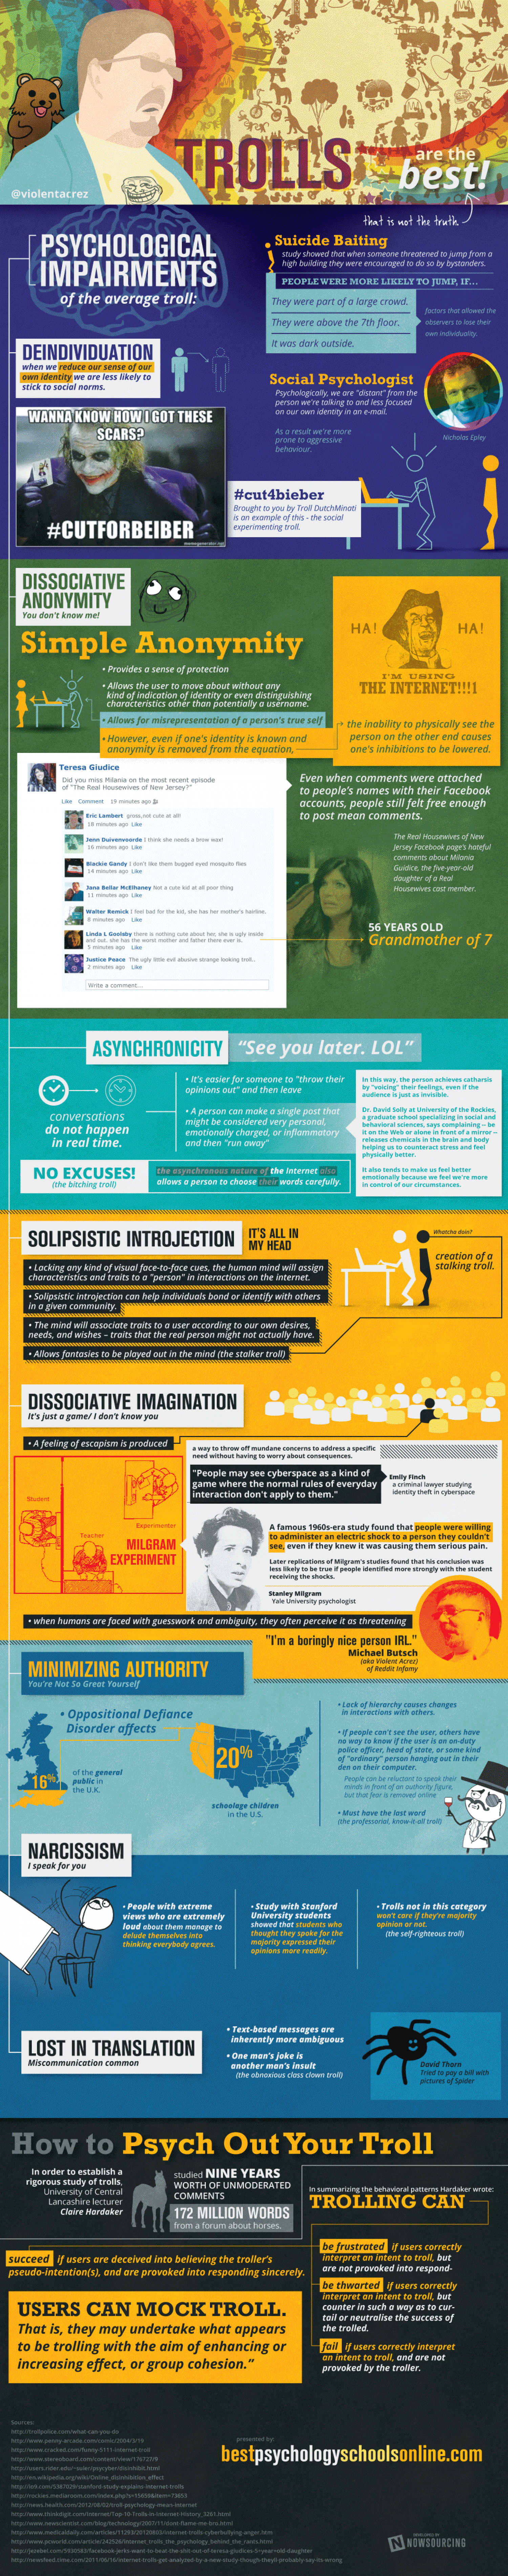 The Psychology of an Internet Troll Infographic